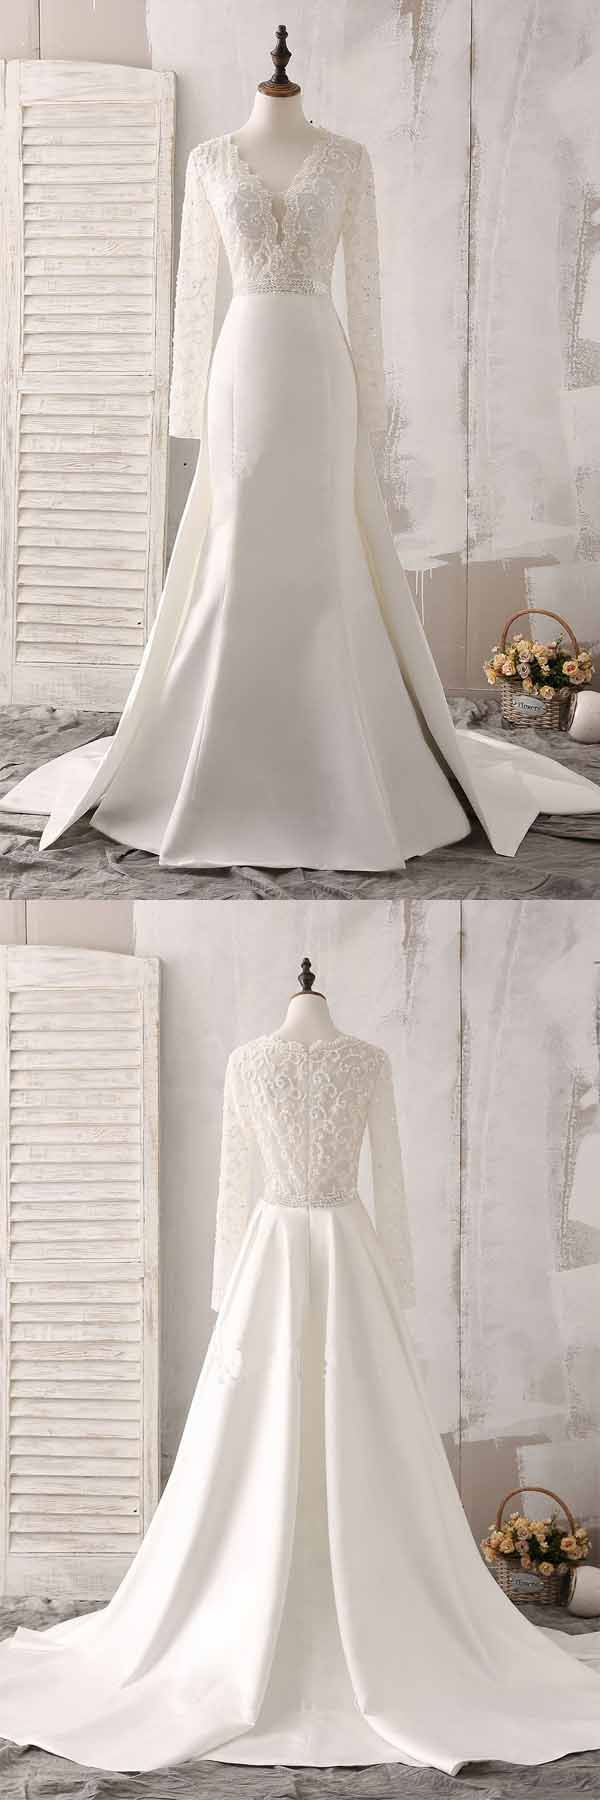 Ivory lace and satin vneck long sleeve beaded wedding dress wd